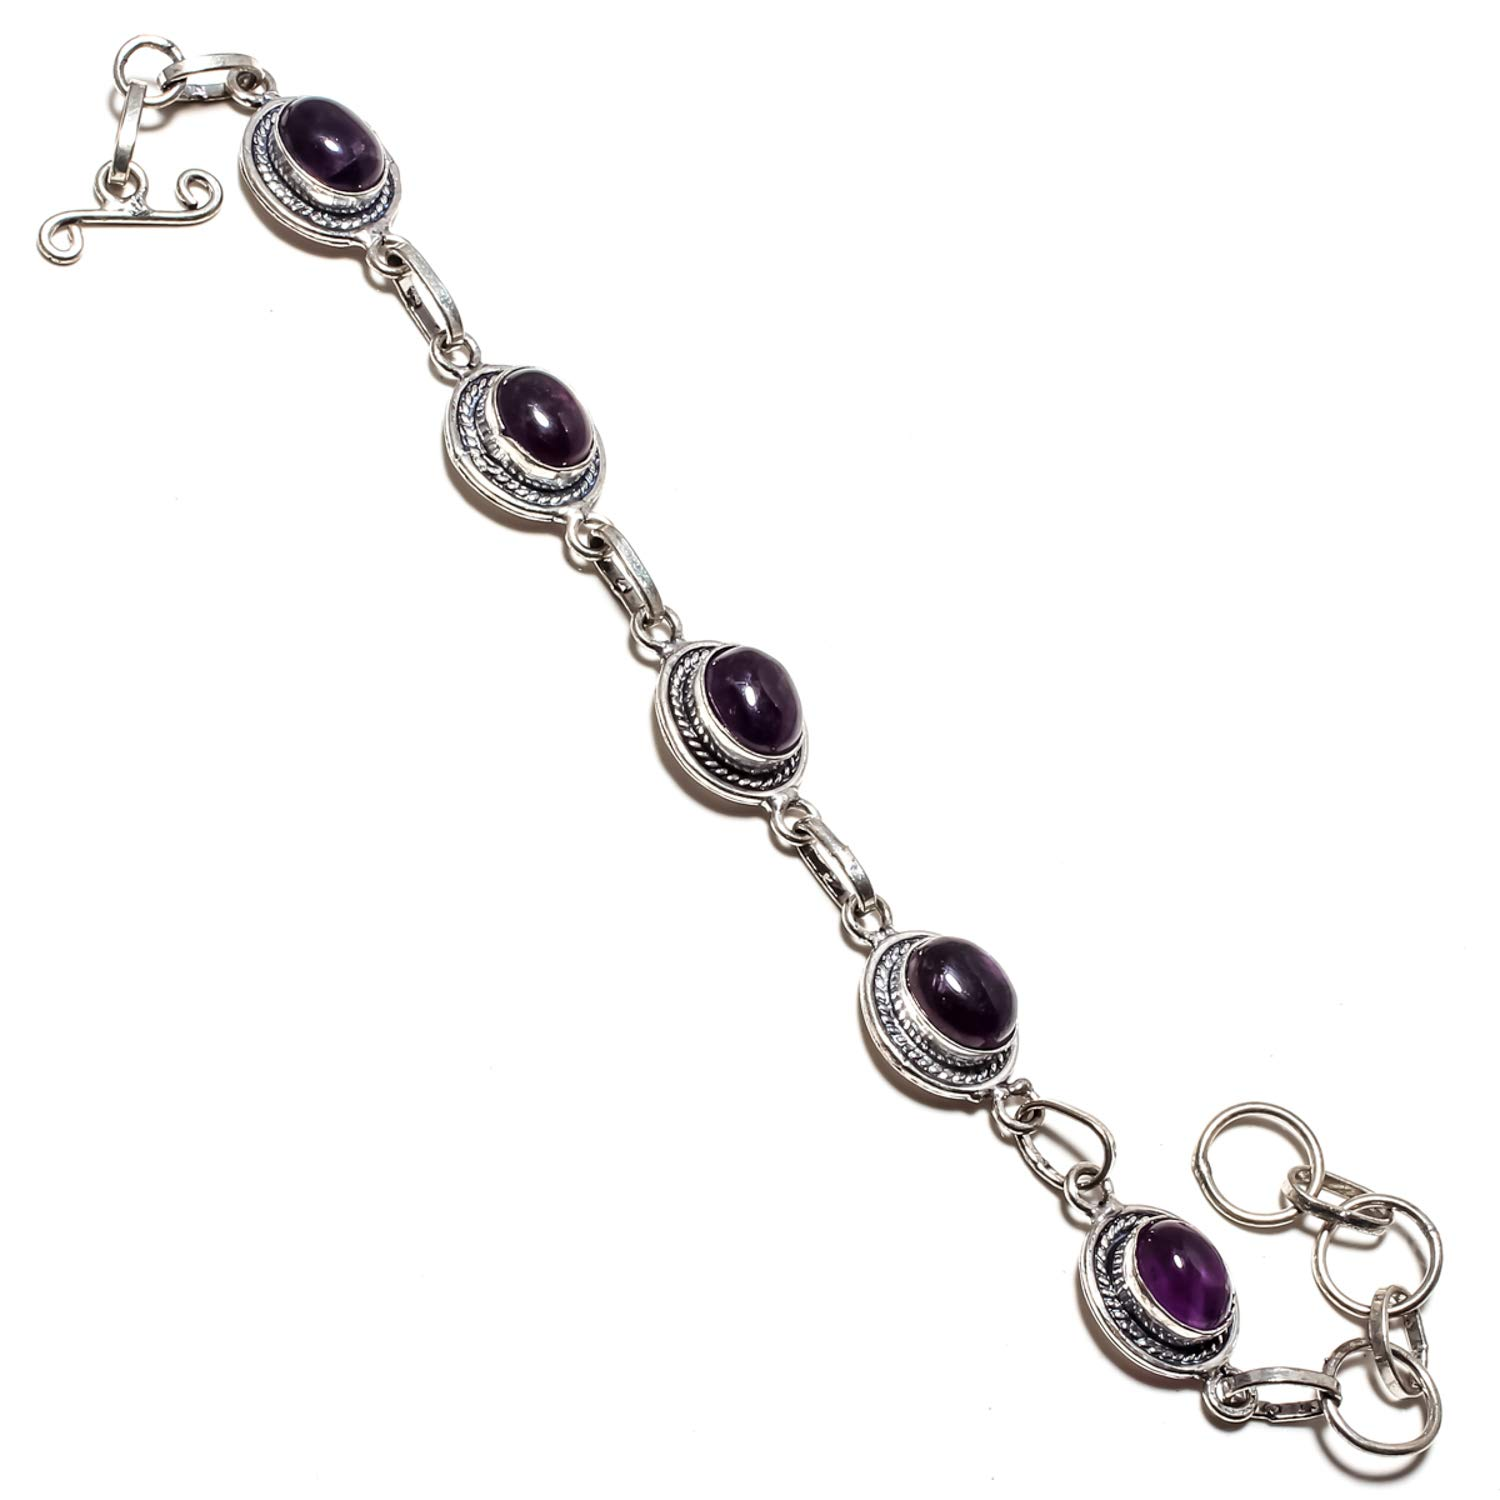 SF-1252 Gorgeous Amethyst Sage Gemstone Bracelet Handmade 925 Sterling Silver Plated Jewelry Adjustable and Flexible Length-Link Chain Bracelet